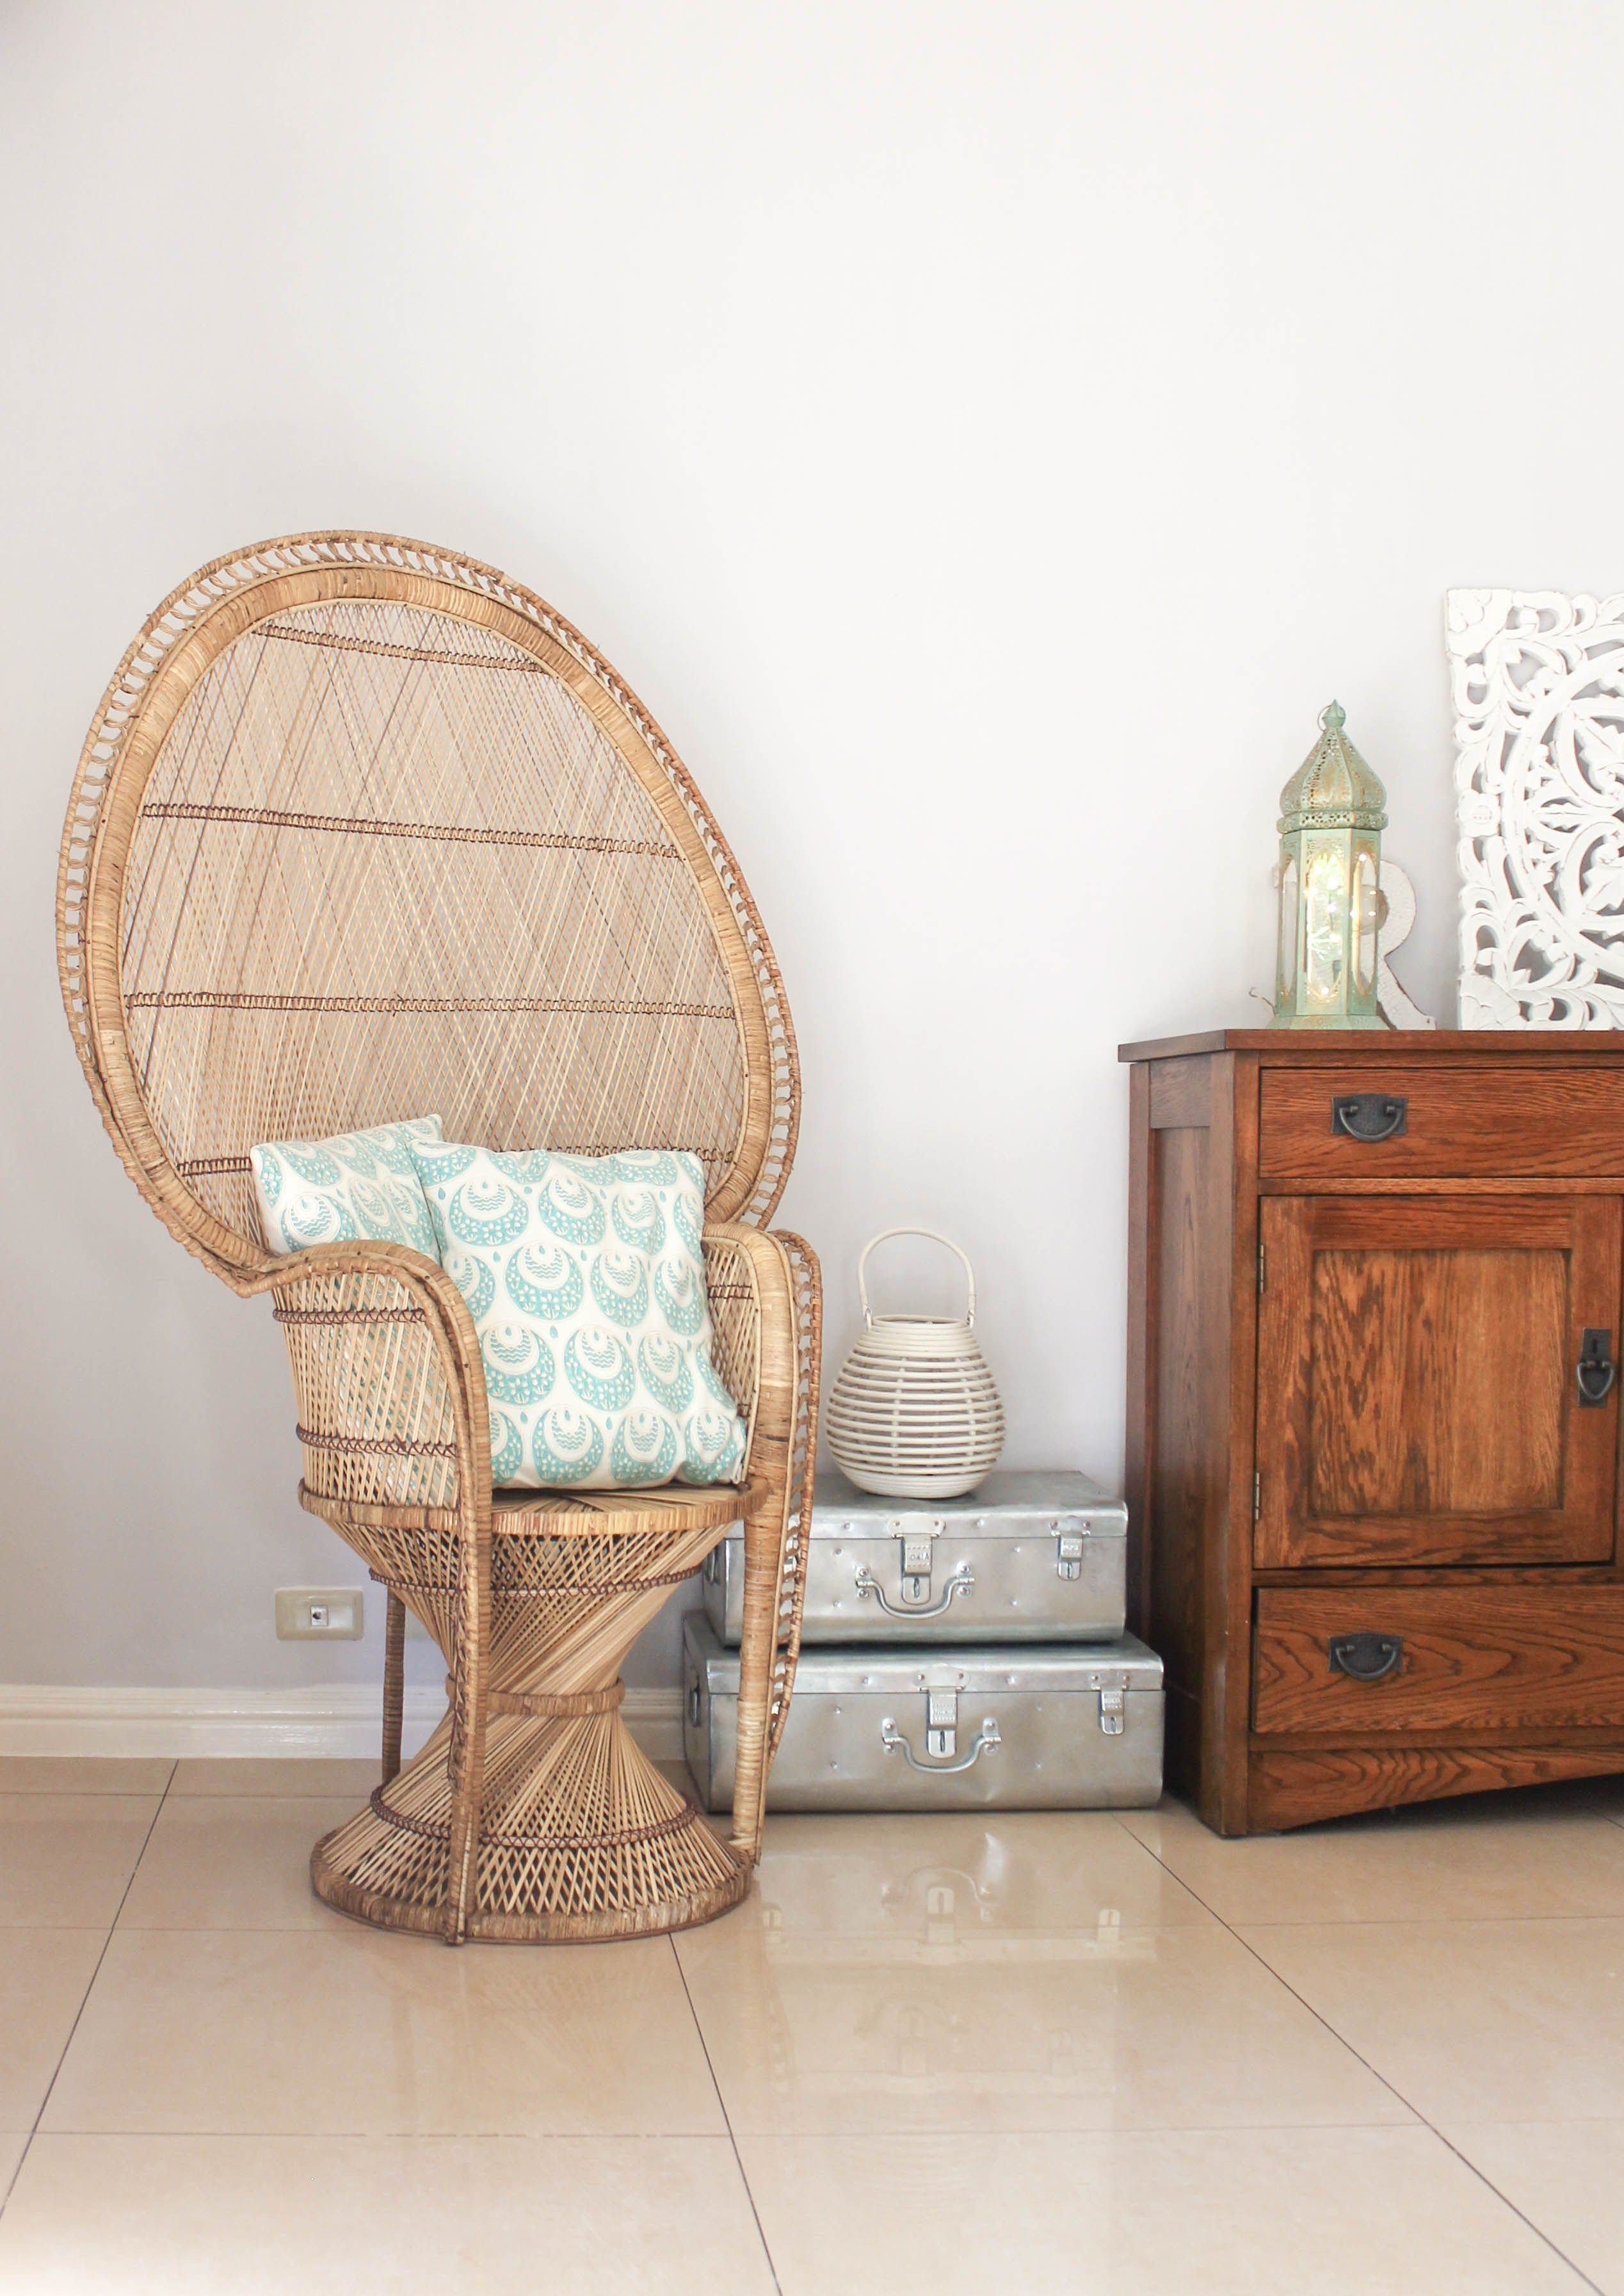 Peacock Chair ☆ Where To Find A Signature Piece From The